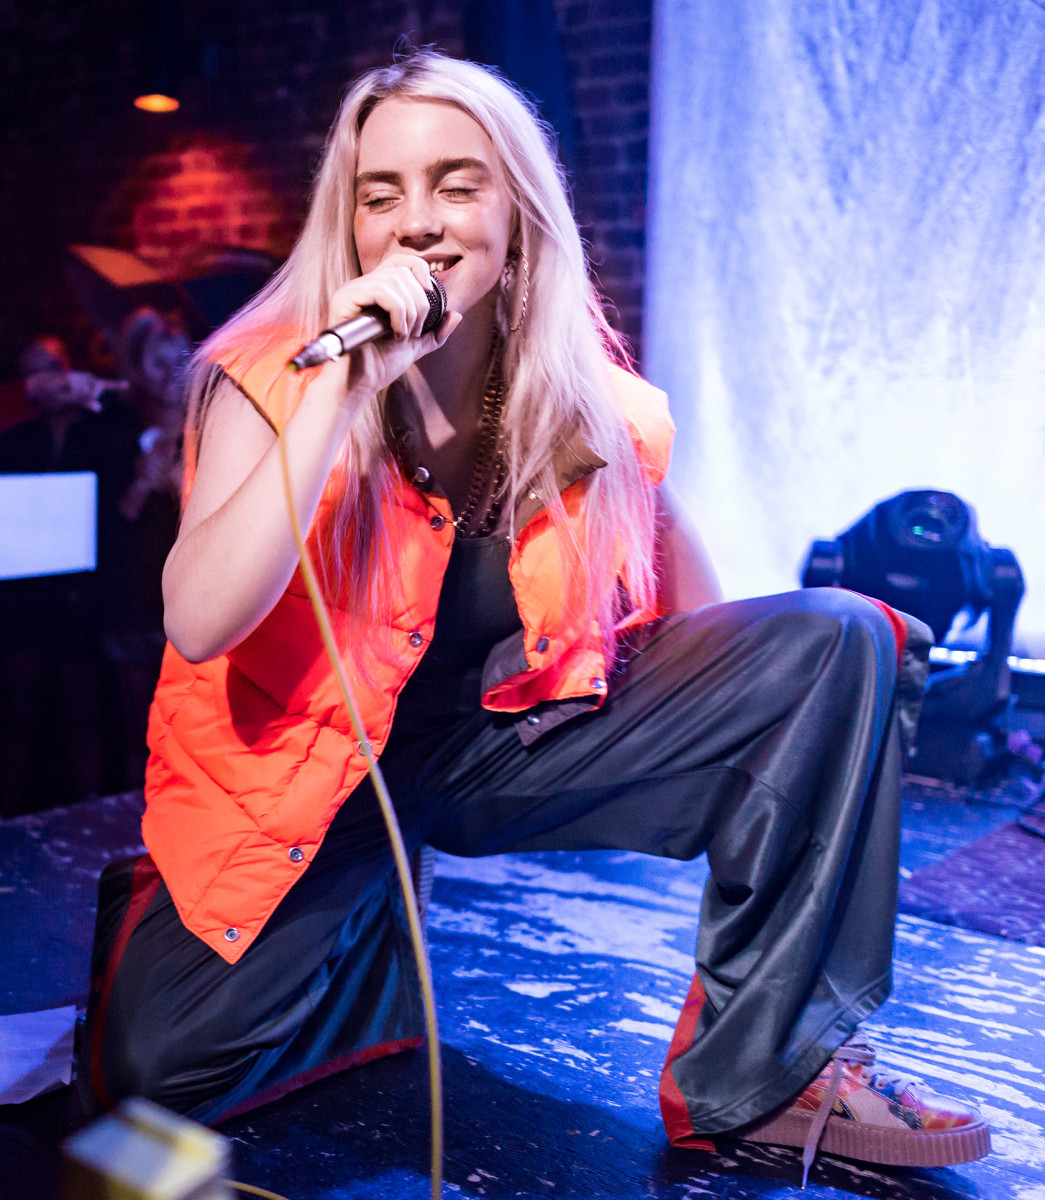 Billie Eilish performing live at The Hi Hat in Highland Park, Los Angeles, California, on Thursday, August 10, 2017.